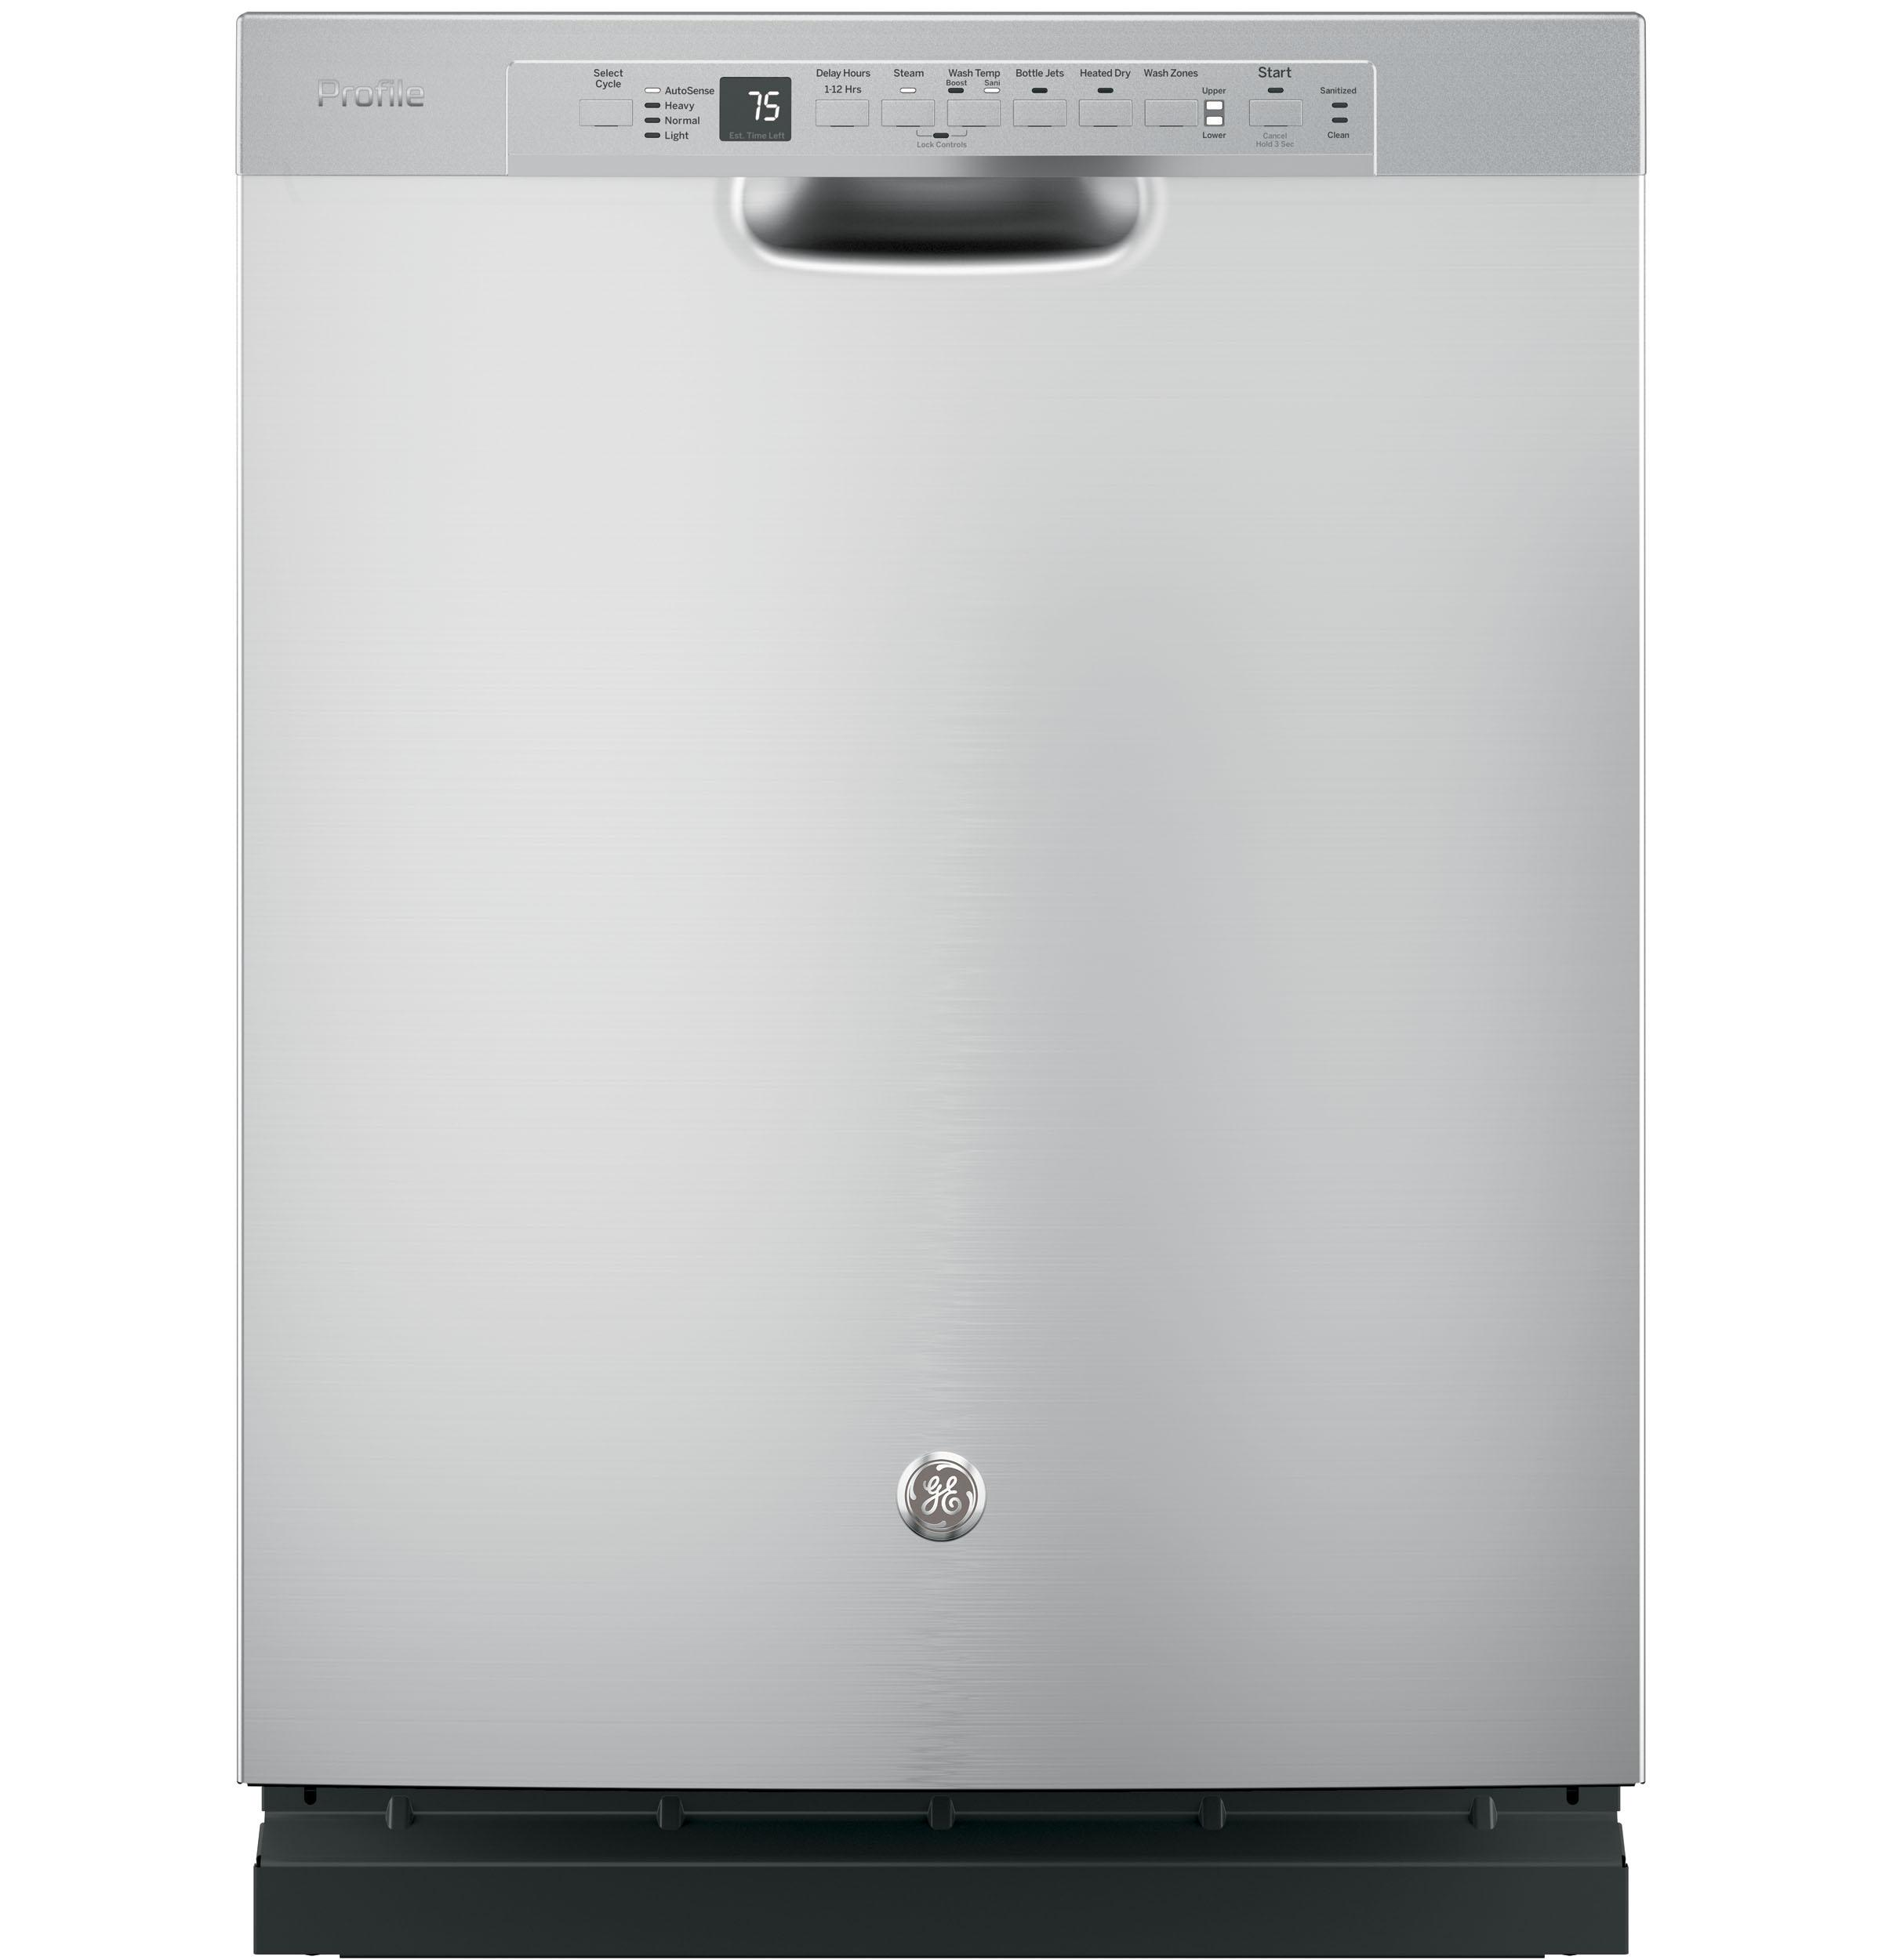 Ge profile stainless steel interior dishwasher with - Dishwasher with stainless steel interior ...